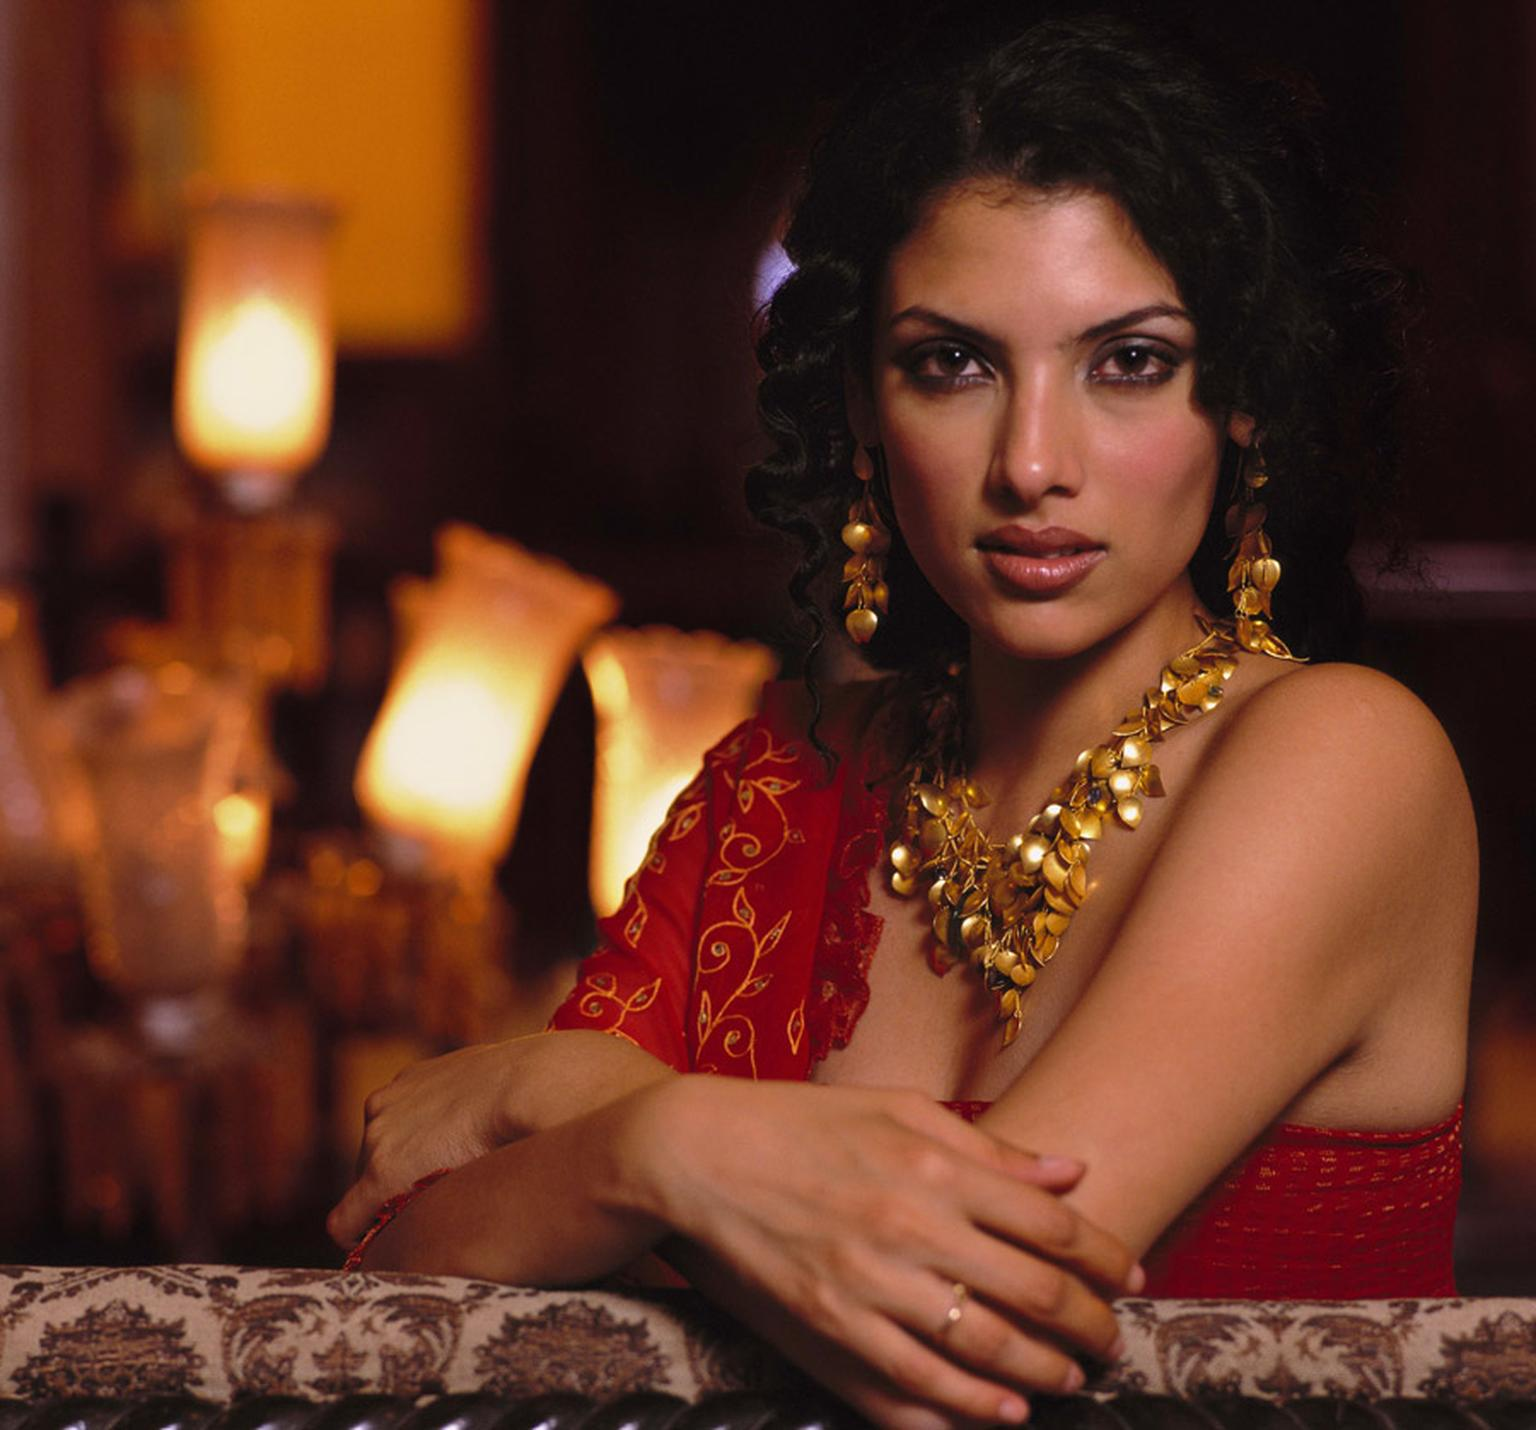 Amrapali-Model-with-Amrapali-jewels-2.jpg